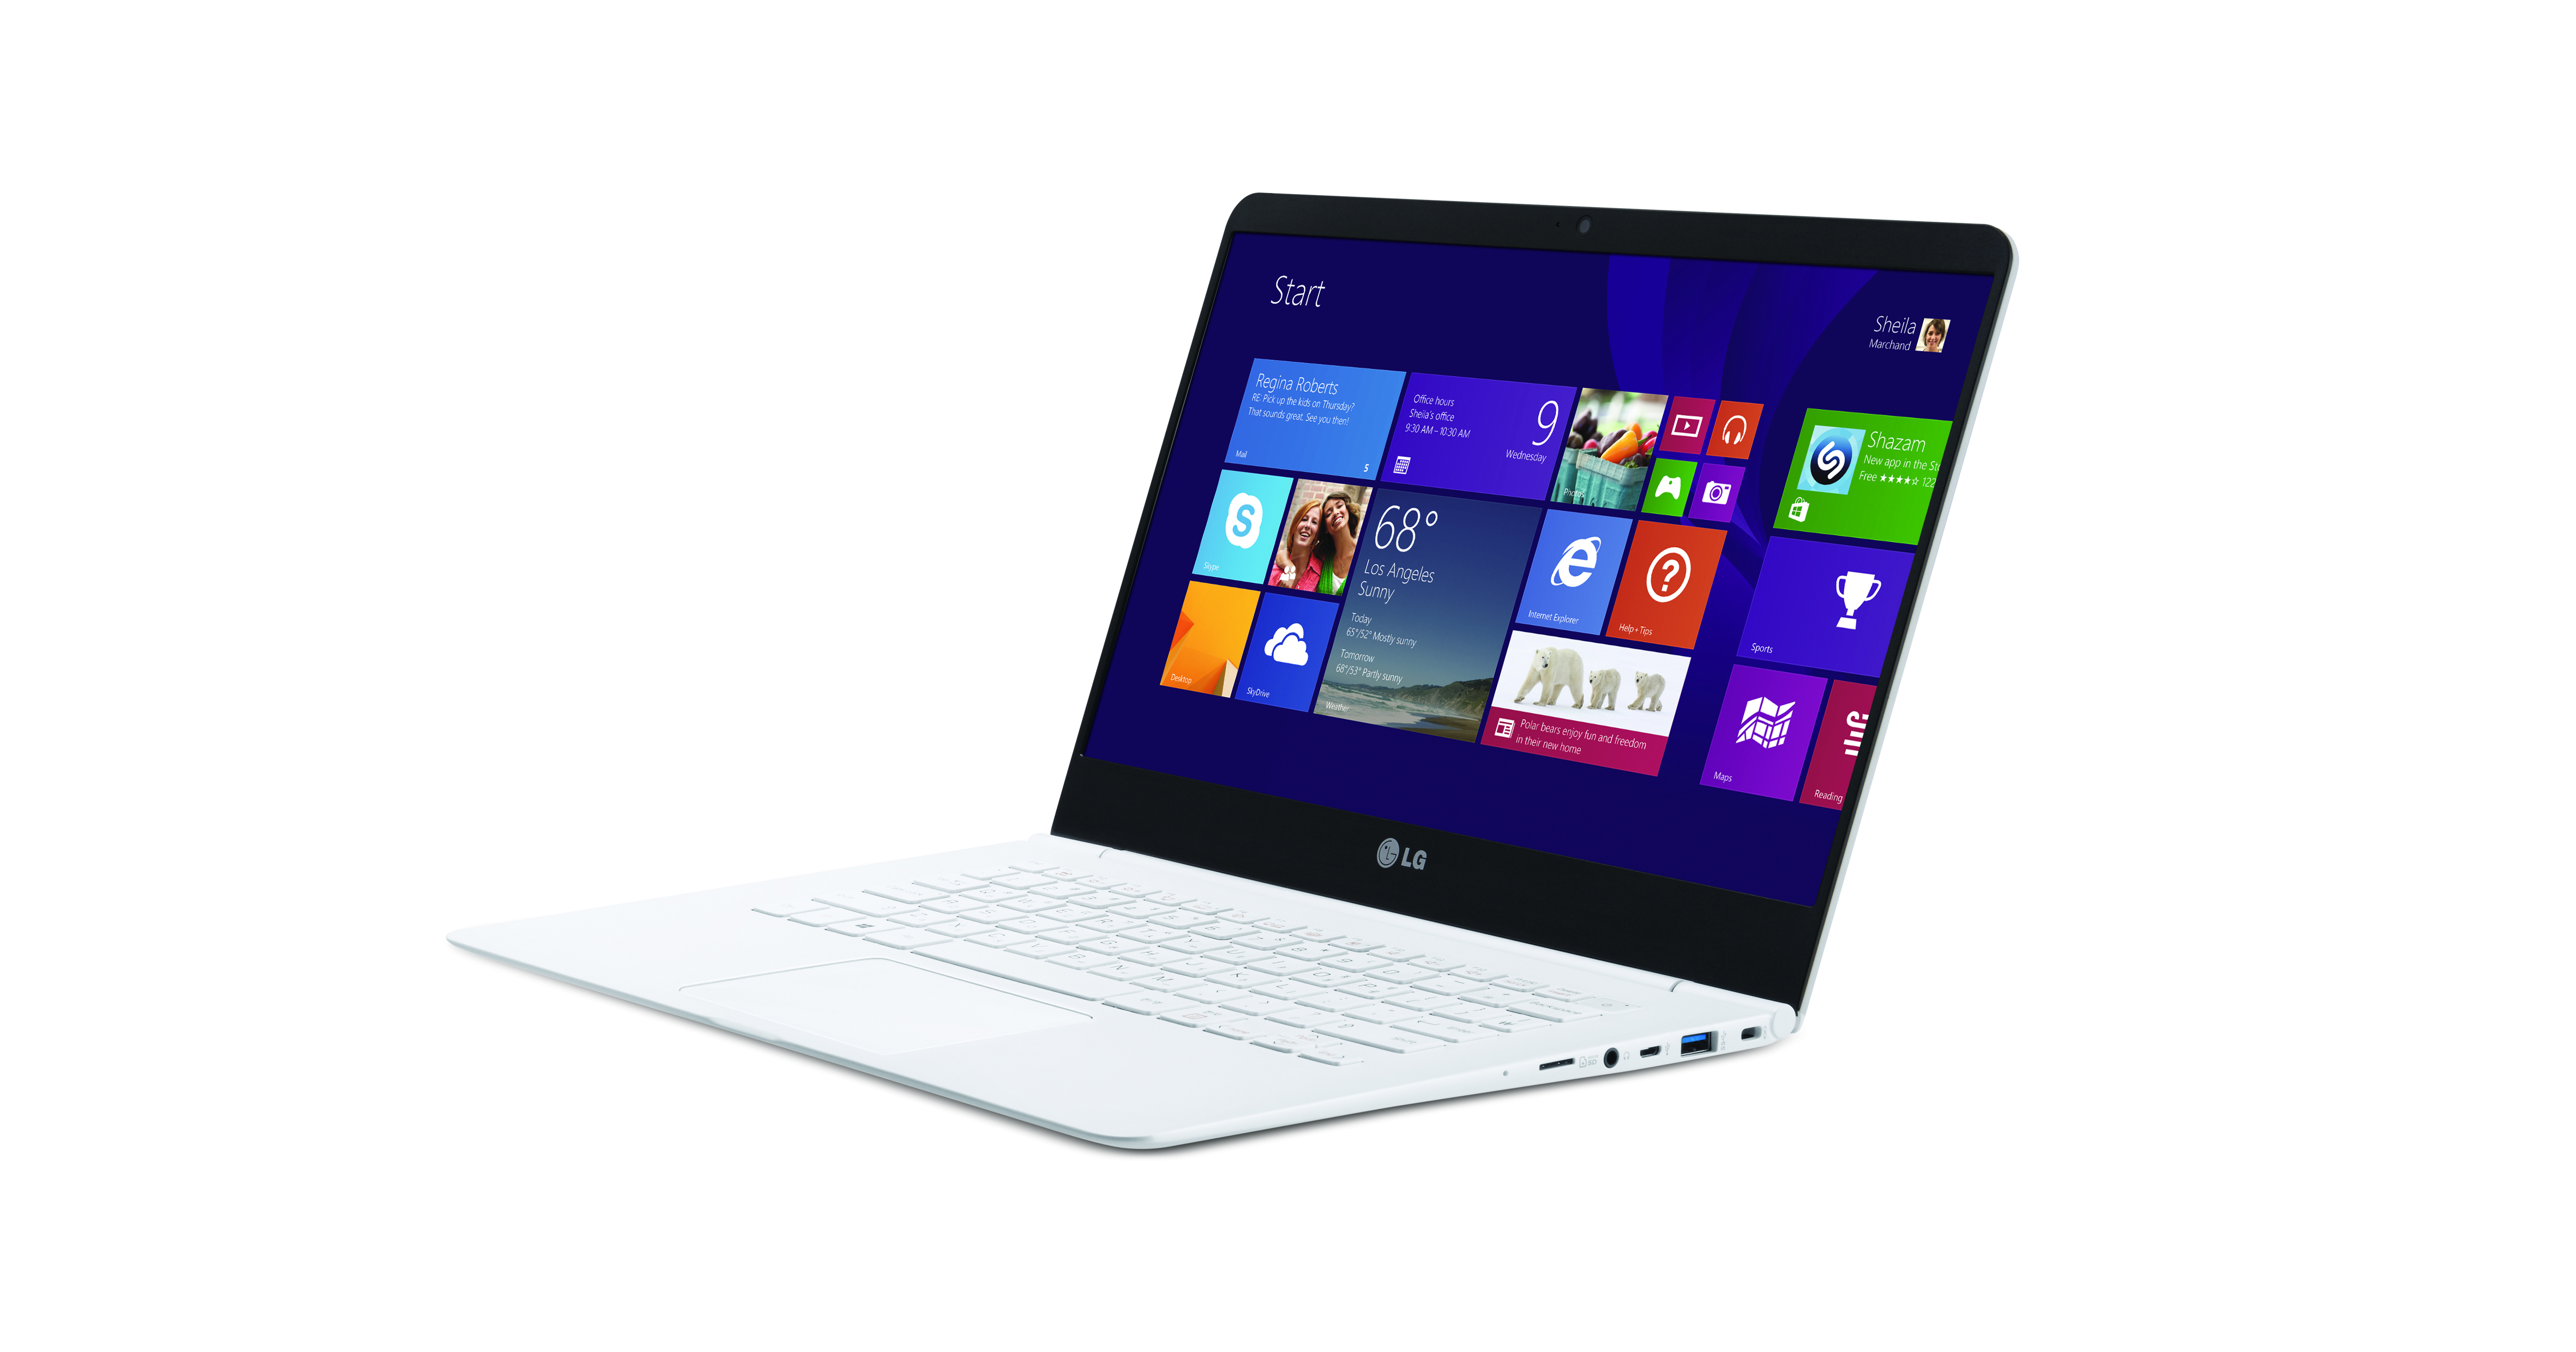 LG_Lightest_14-inch_Ultra_PC_(Model_14Z950)1